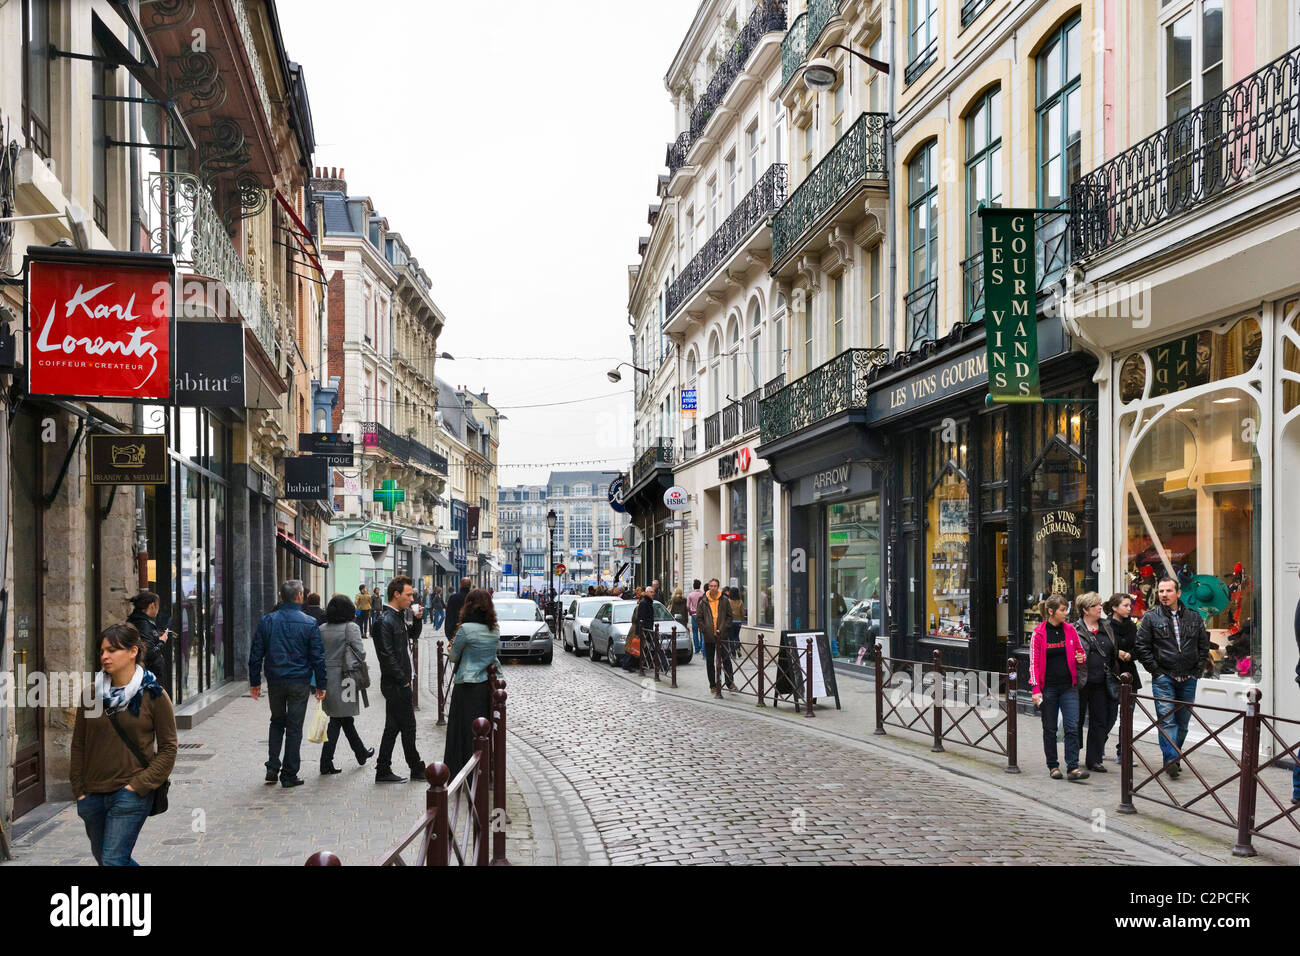 Shops on a street in the city centre, Lille, Flanders, France - Stock Image